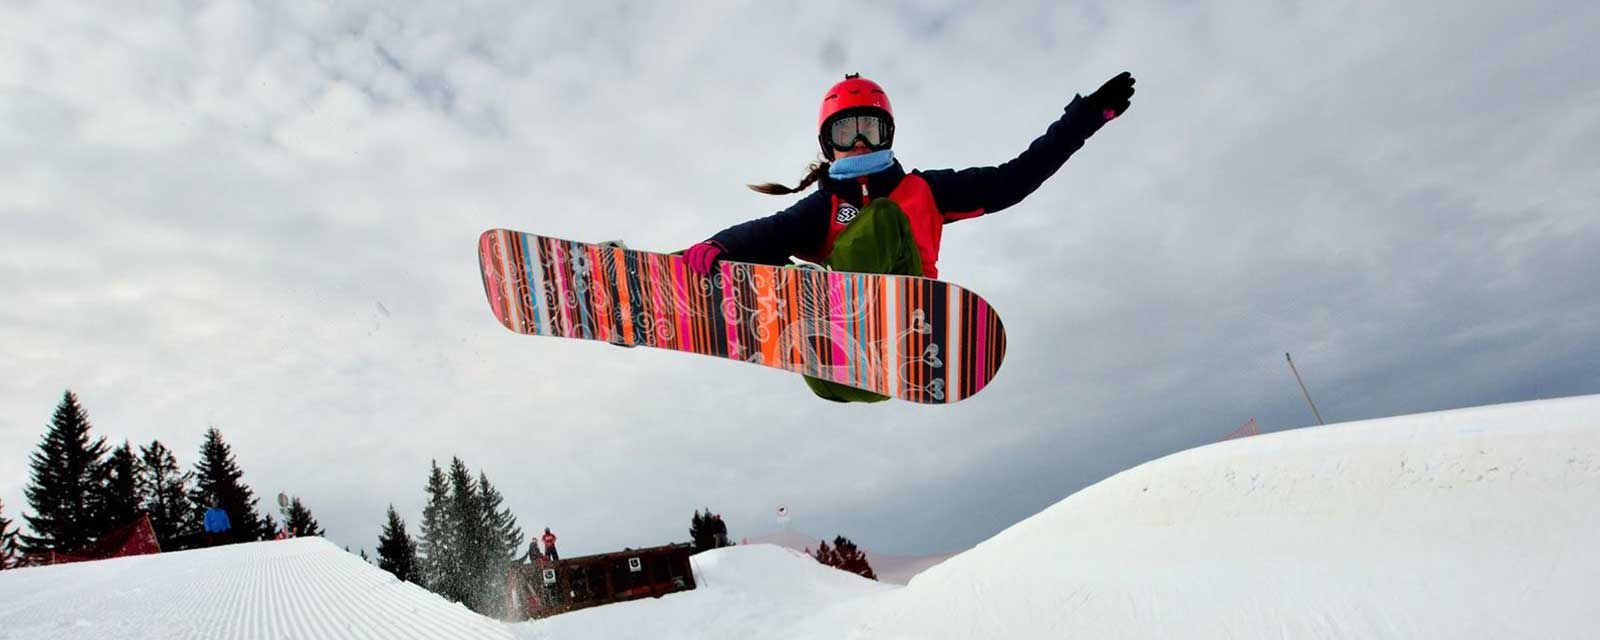 Maisie Potter - PGL Sponsored Athlete racing her snowboard